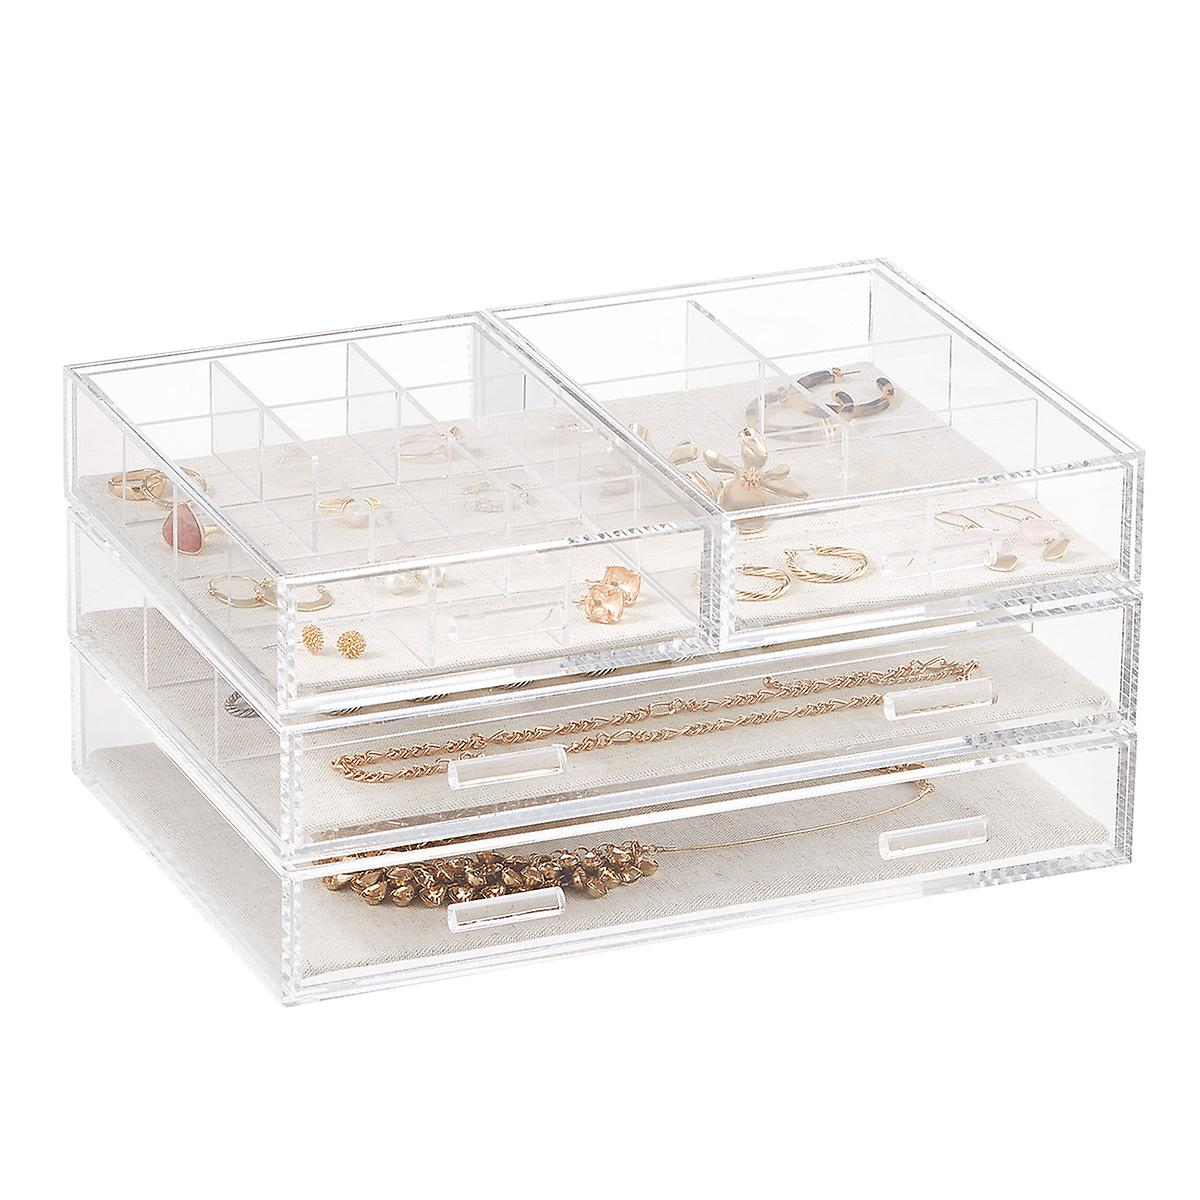 Modular Acrylic Linen Jewelry Drawer System